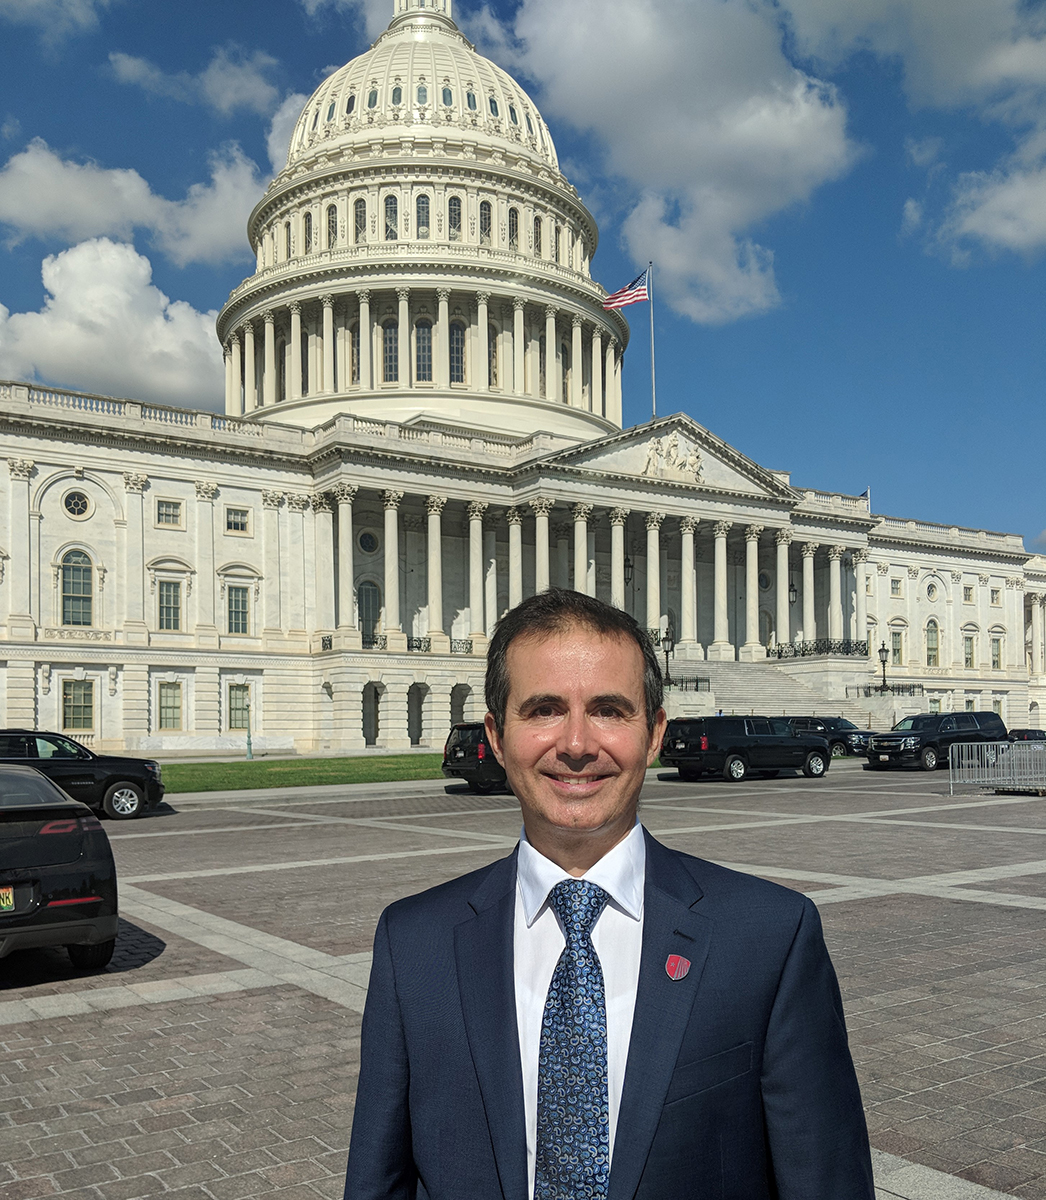 Dr. Dan Colosi of Stony Brook School of Dental Medicine advocates for funding for dental research on Capitol Hill.